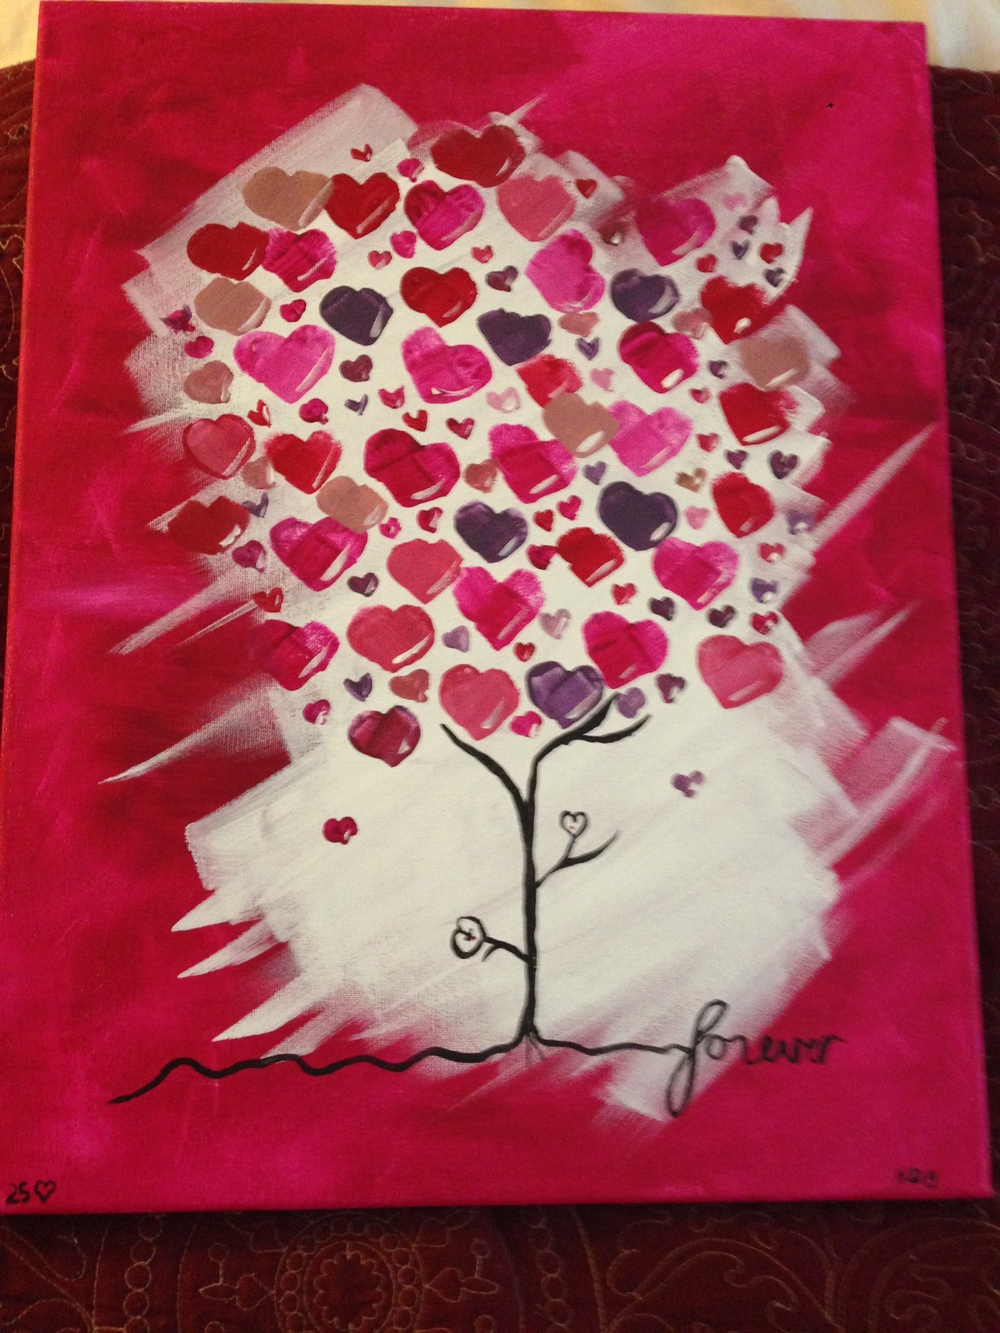 and I painted this for him.